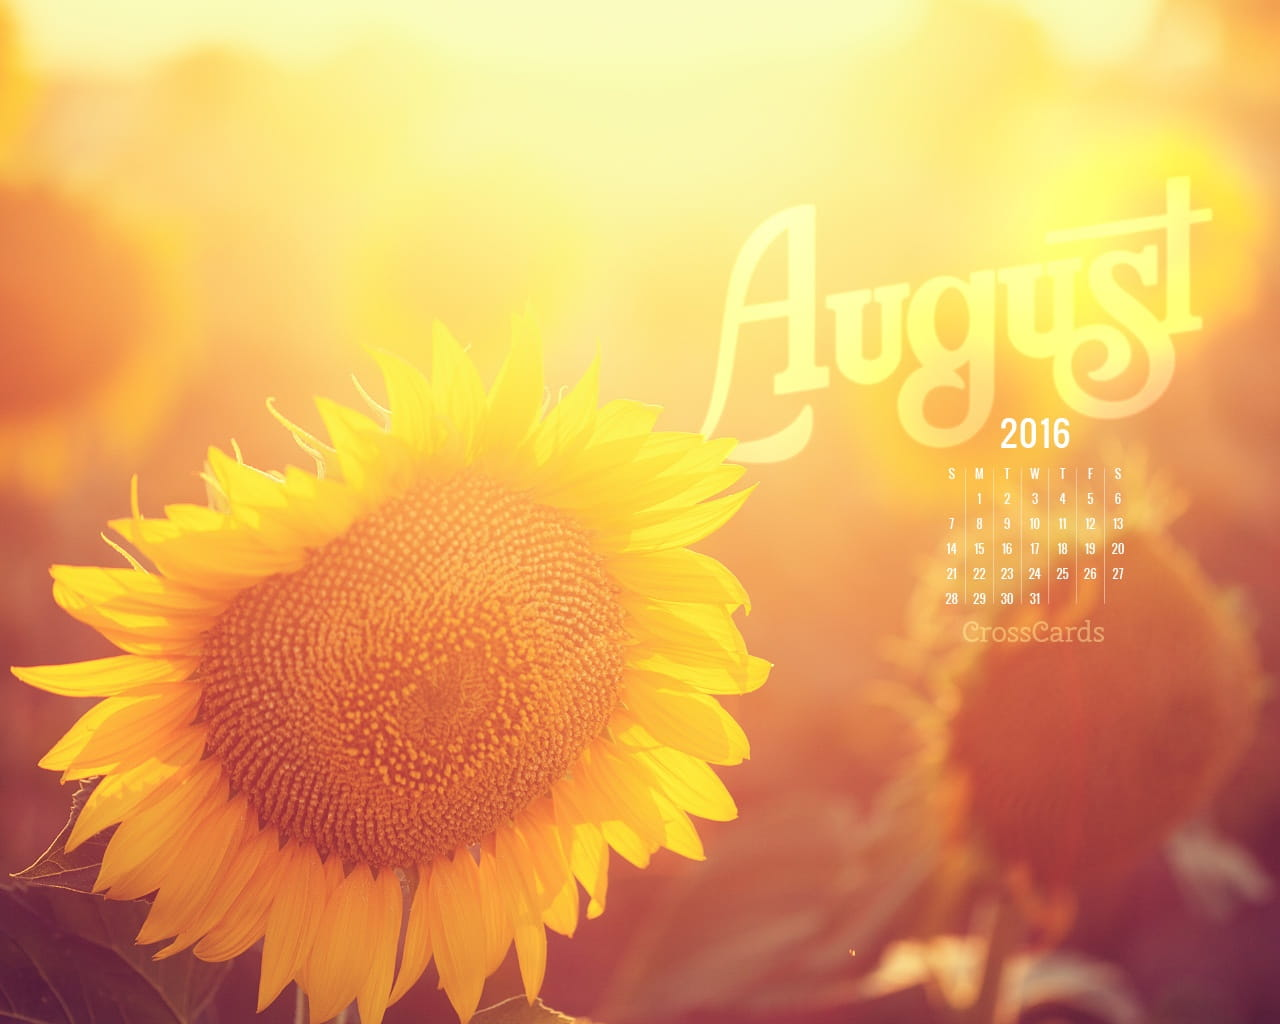 Desktop Calendar Wallpaper With Reminder : August sunflower desktop calendar free